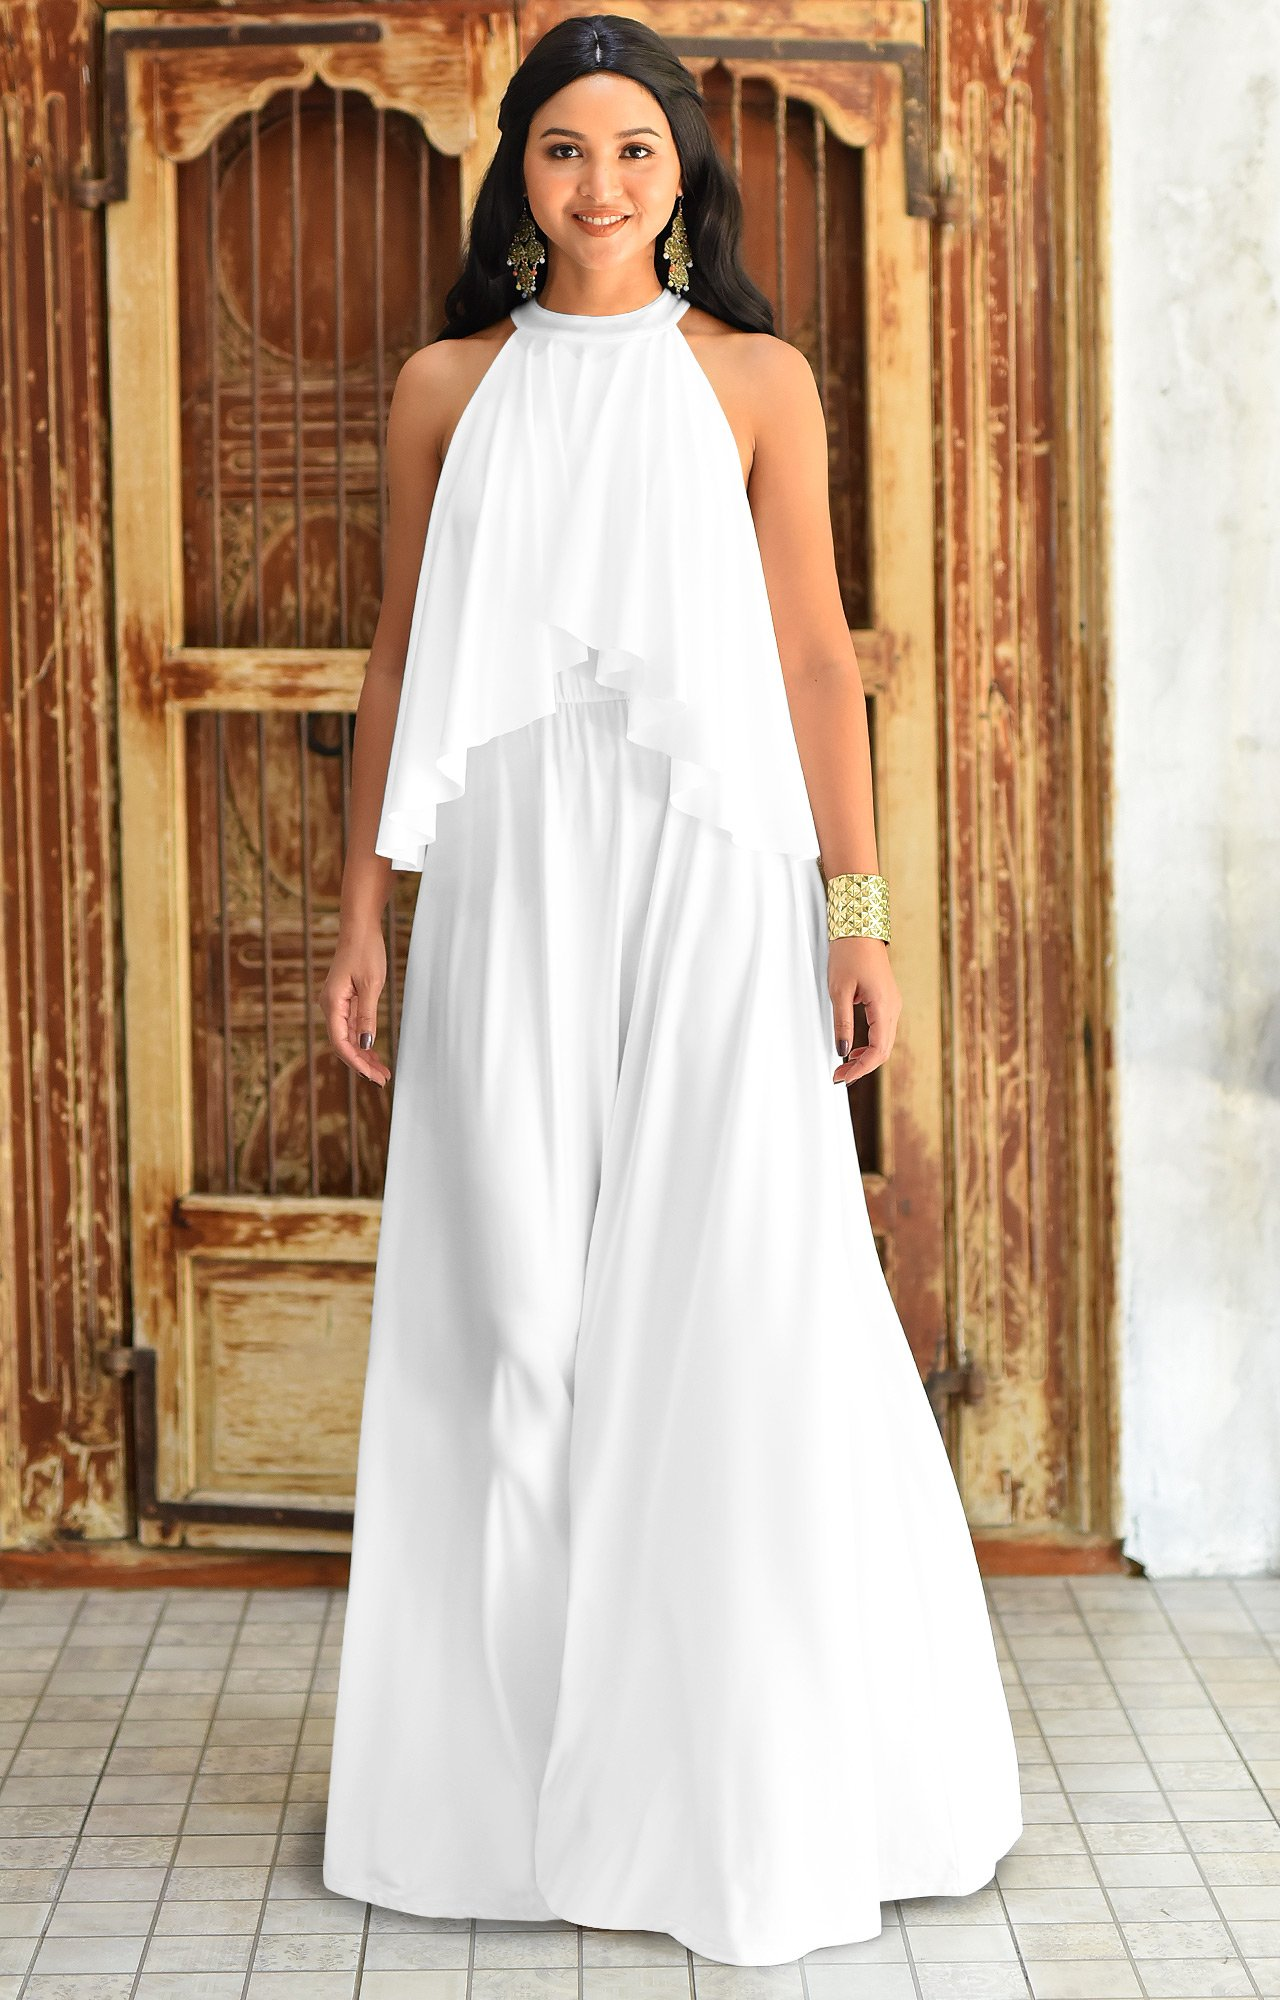 c0d3956124bc Petite Dresses For Spring Wedding - Aztec Stone and Reclamations